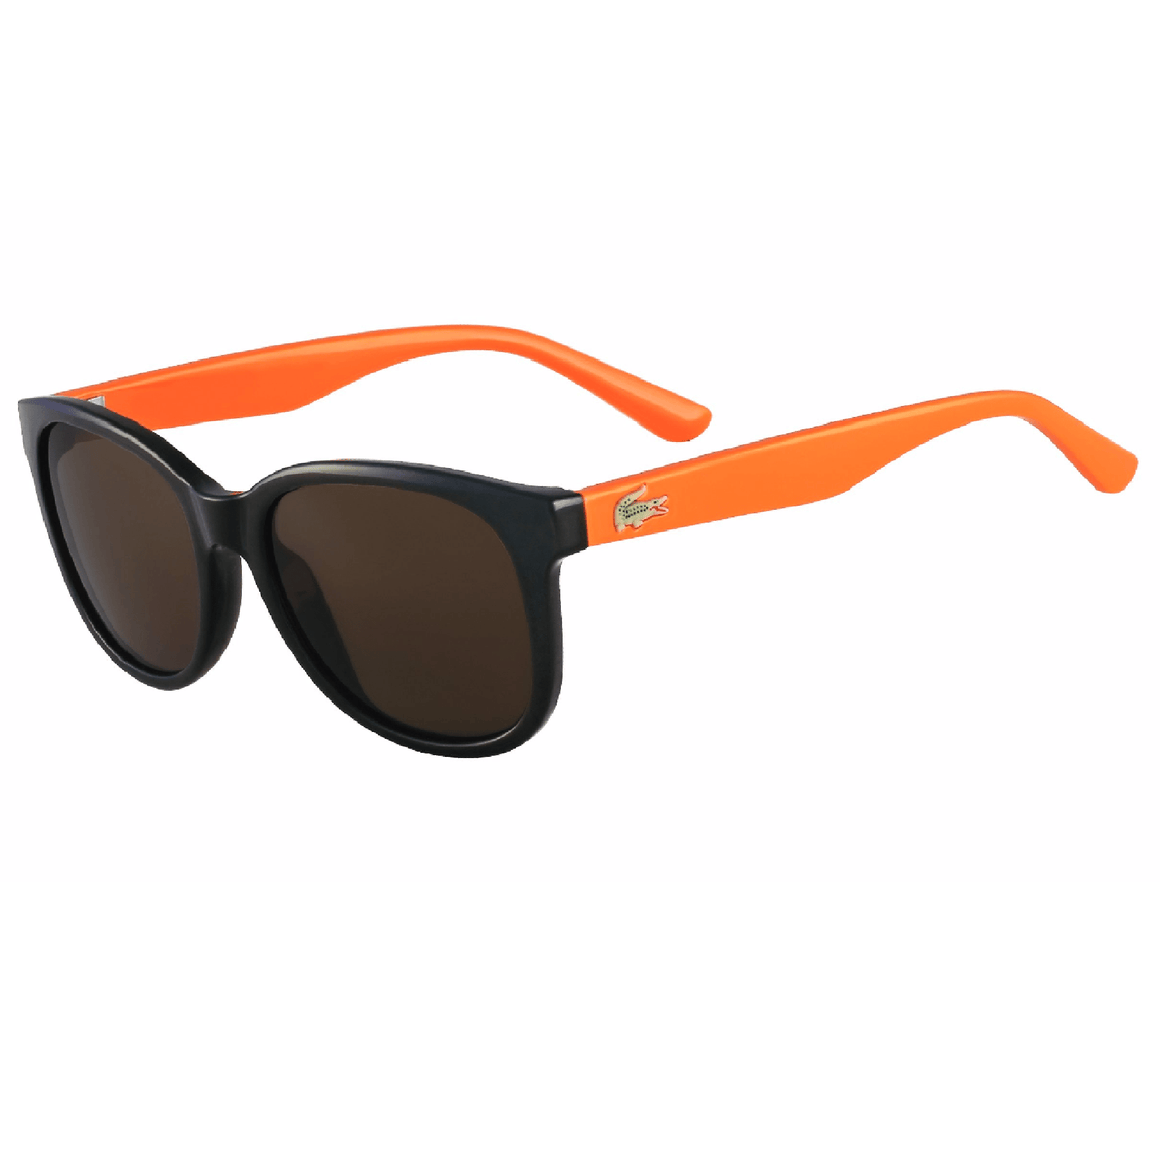 Lacoste 3603.001 Teen Sunglasses